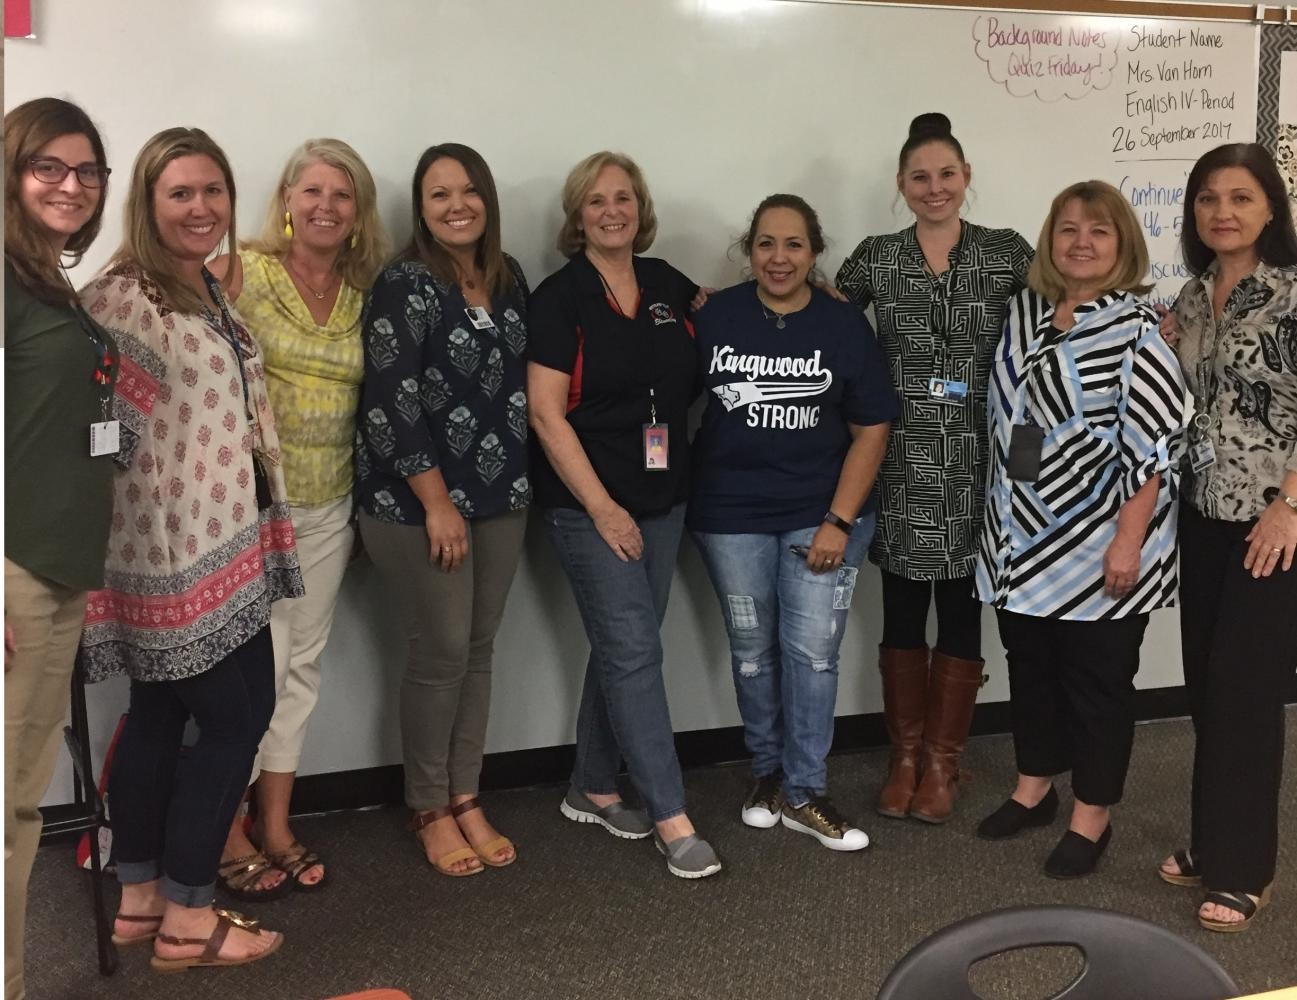 Kristin Johnson, Kacie Sheridan, Cindy Babich, Tatiana Kolesnikov, Kelly Kilpatrick, Gina Sanchez, Lesa Pritchard, and Regina Garcia are all counselors and educators that volunteered to provide child care, snacks, and counseling for Harvey victims.